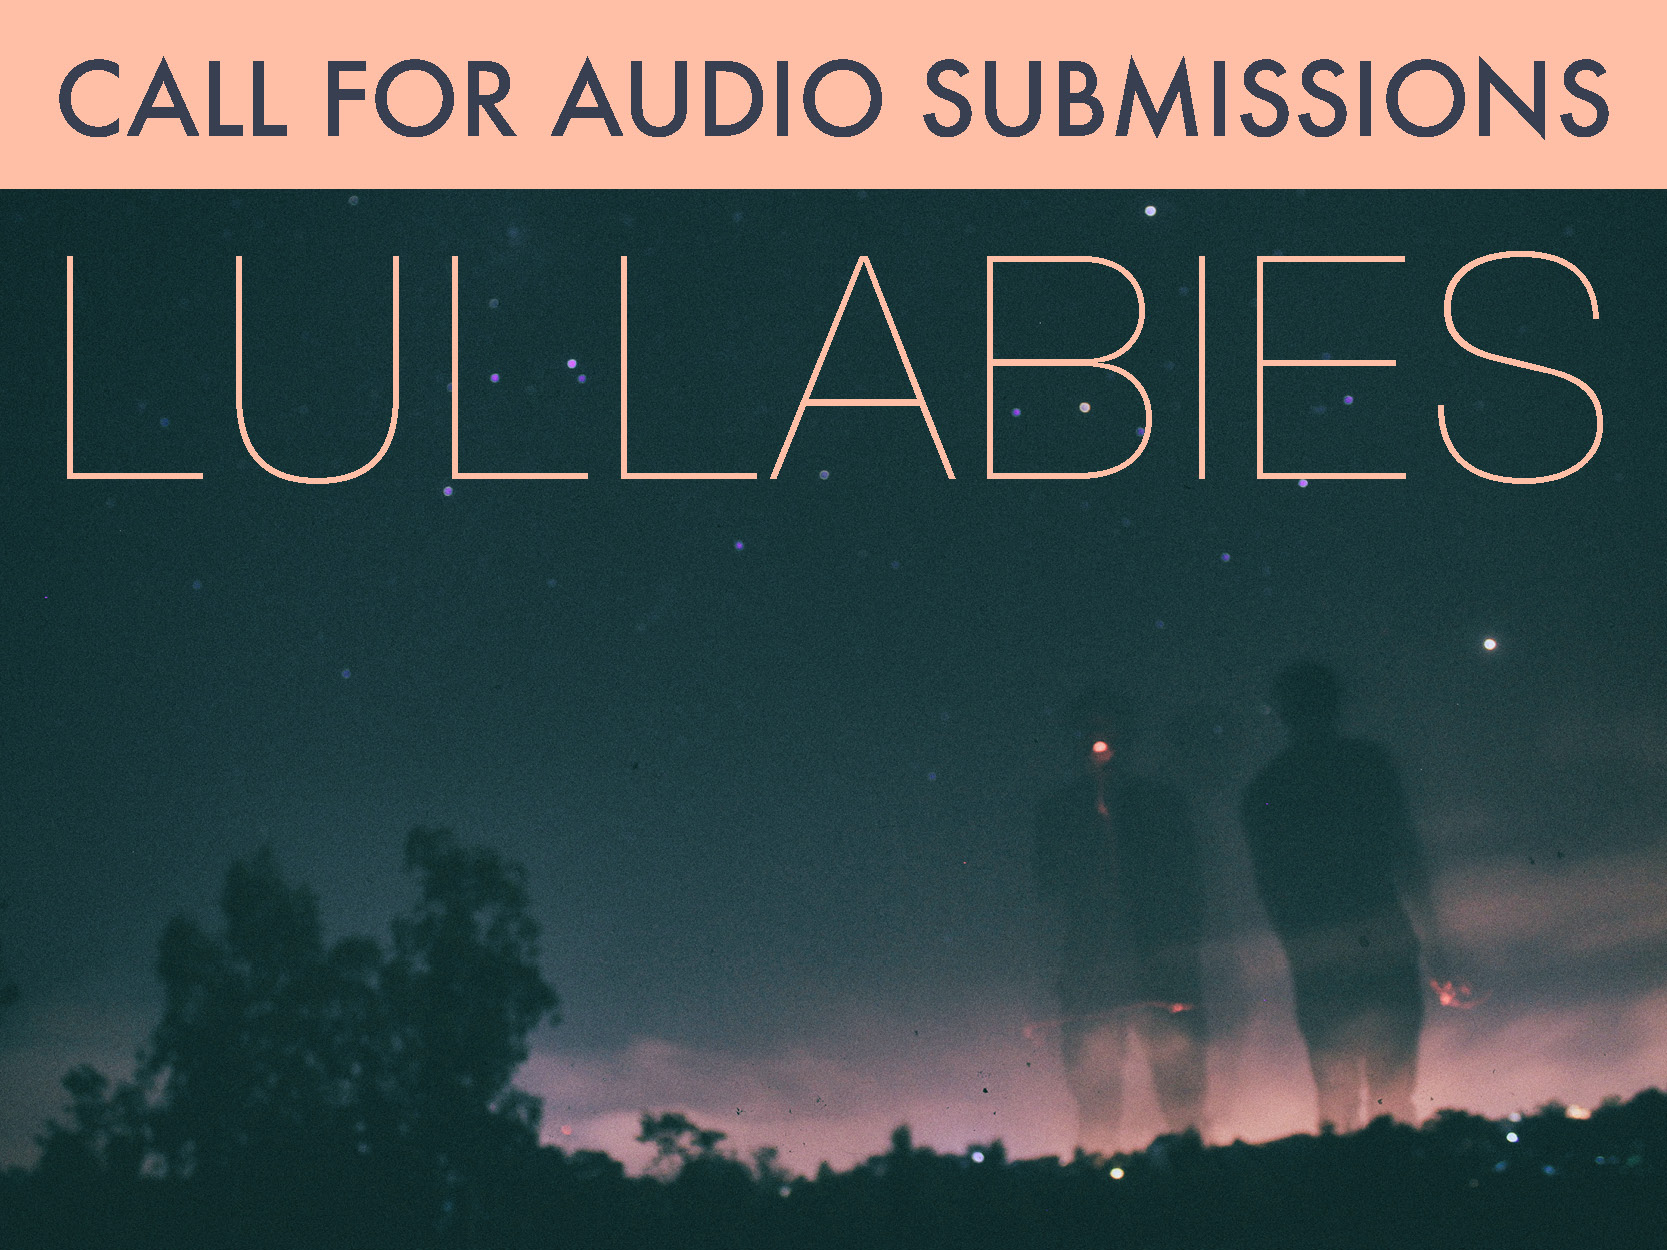 Now accepting submissions for our audio album of lullabies